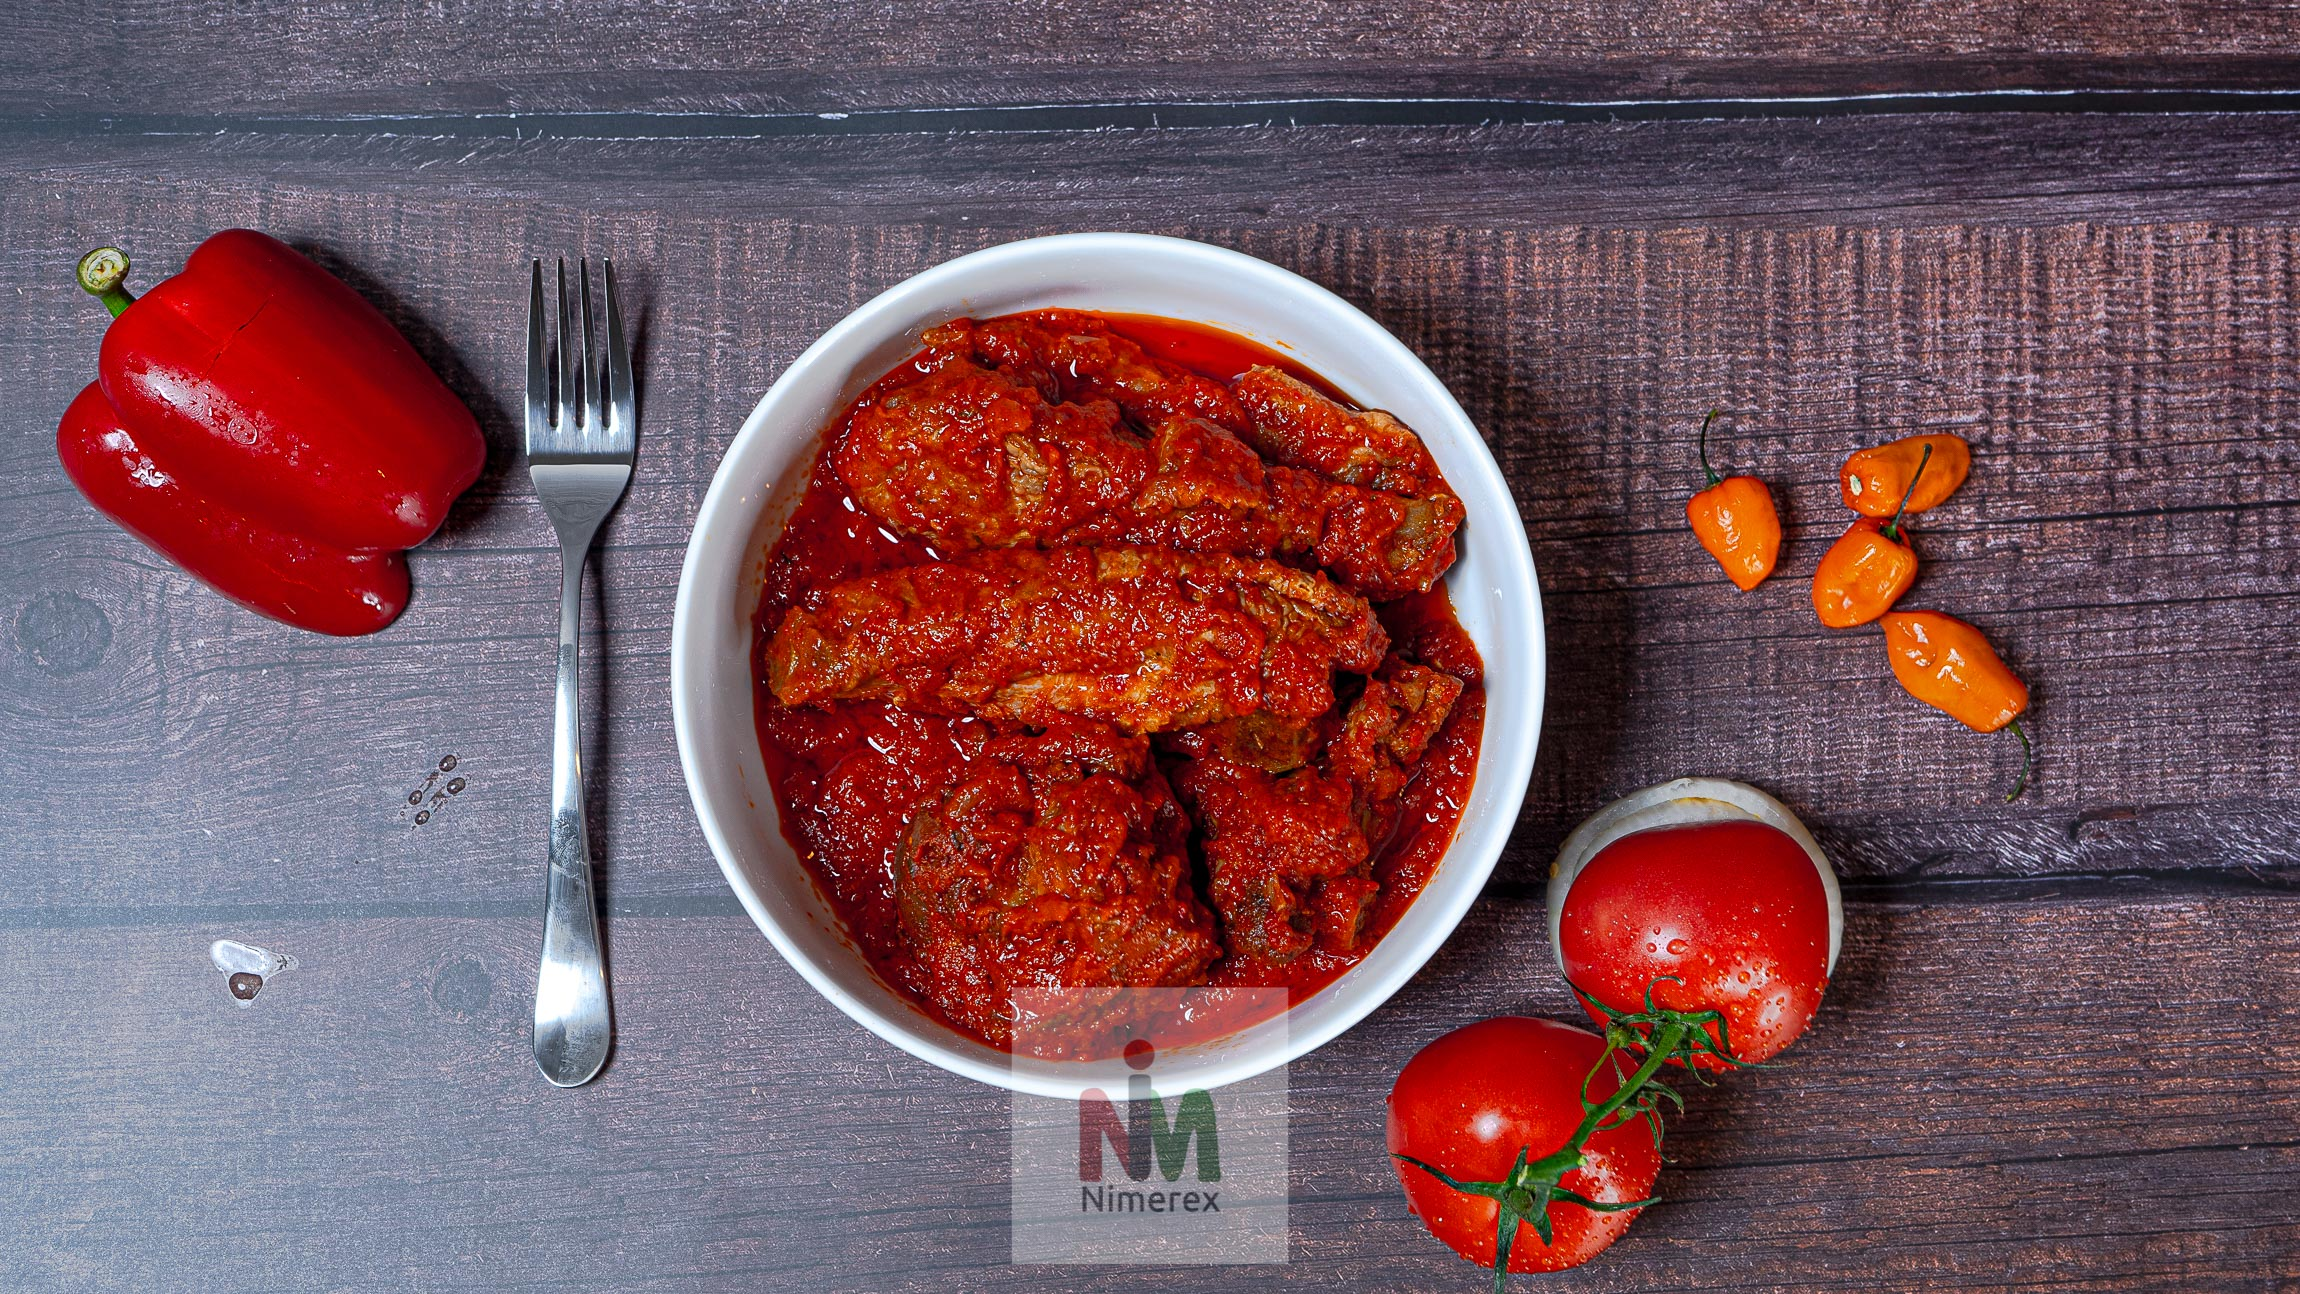 Nimerex now delivers Turkey Stew to homes across America. Get it Today.